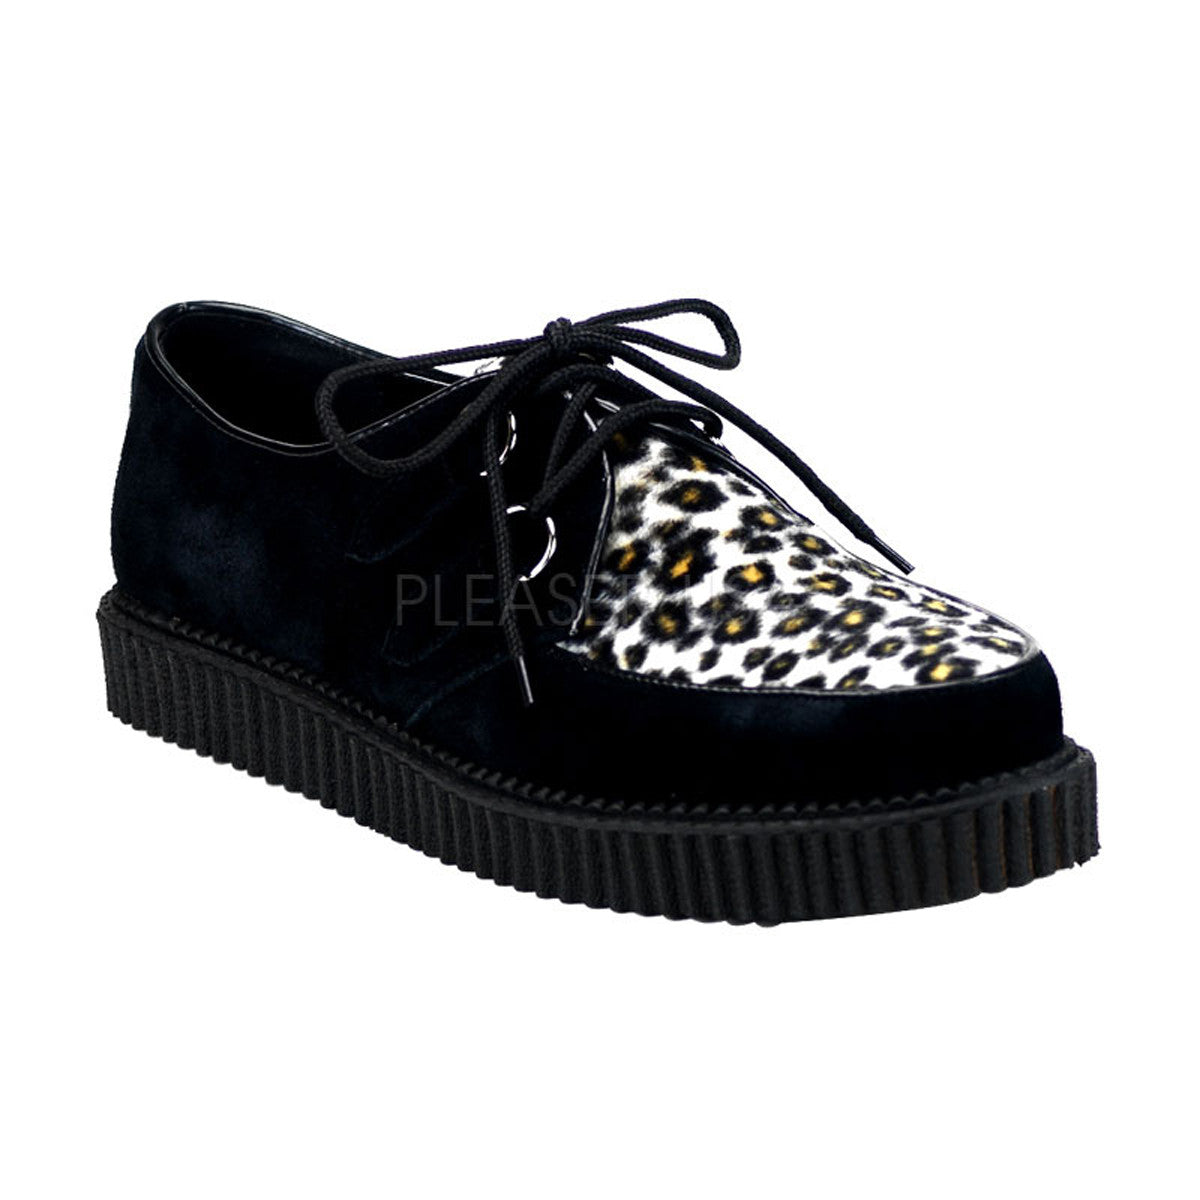 Demonia,DEMONIA CREEPER-600 Men's Black Suede-Cheetah Fur Creepers - Shoecup.com